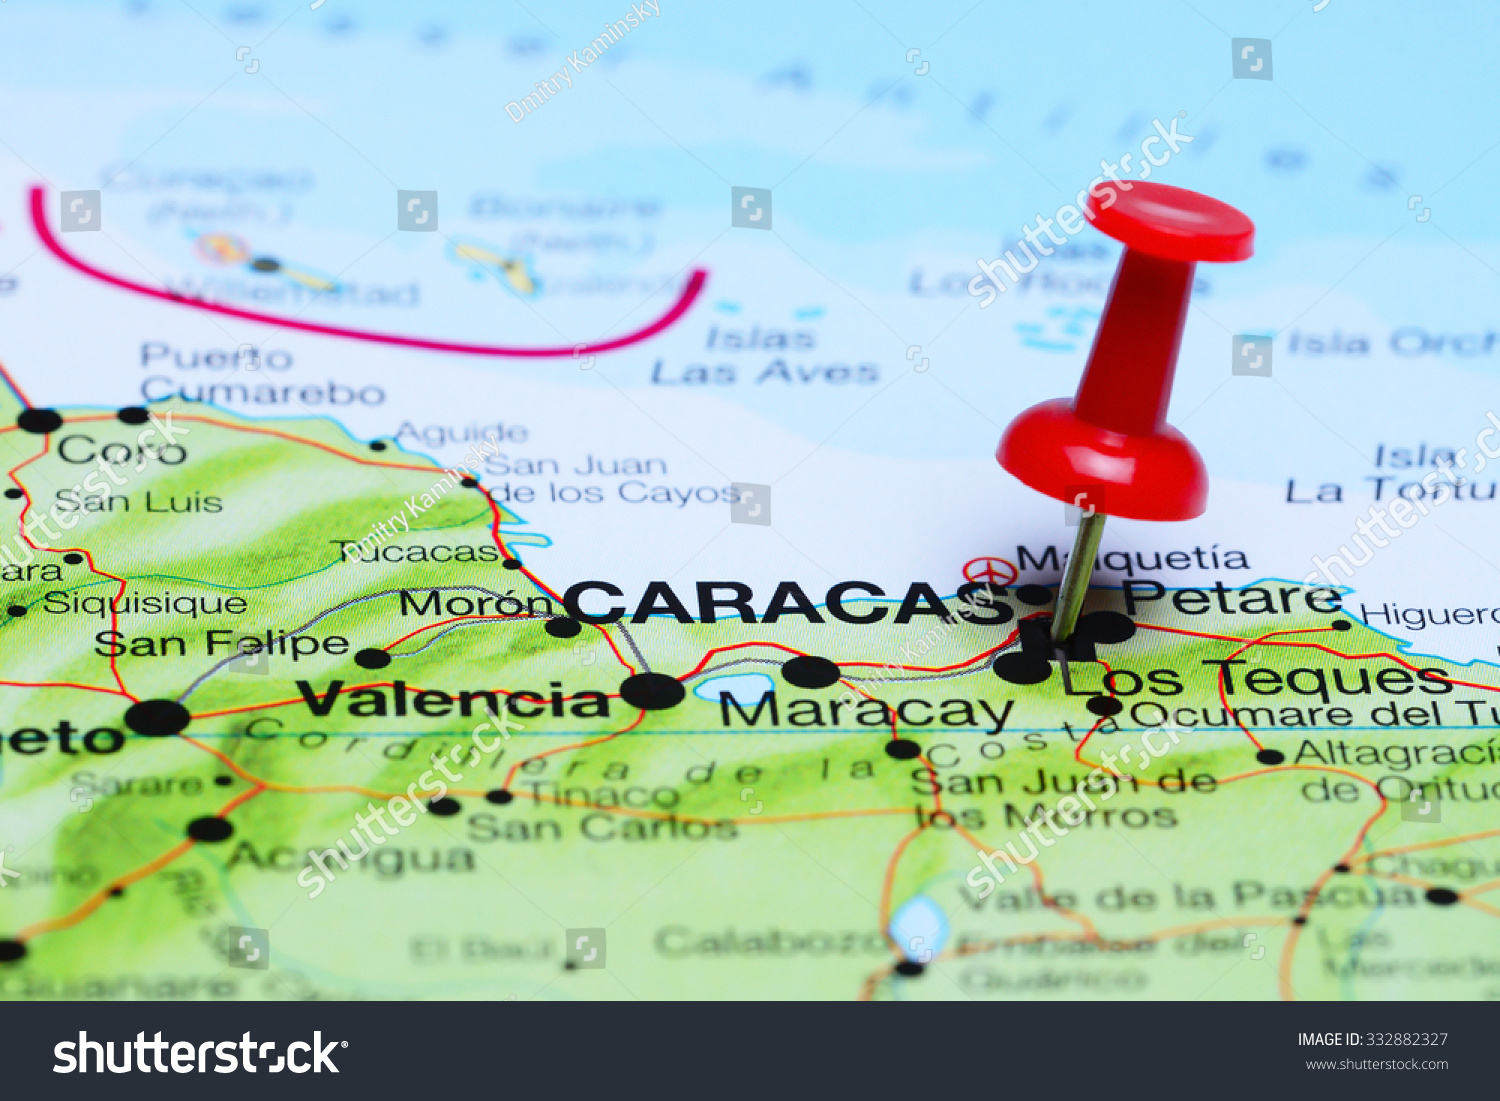 Los Cayos Florida Map.Caracas Pinned On Map America Stock Photo Edit Now 332882327